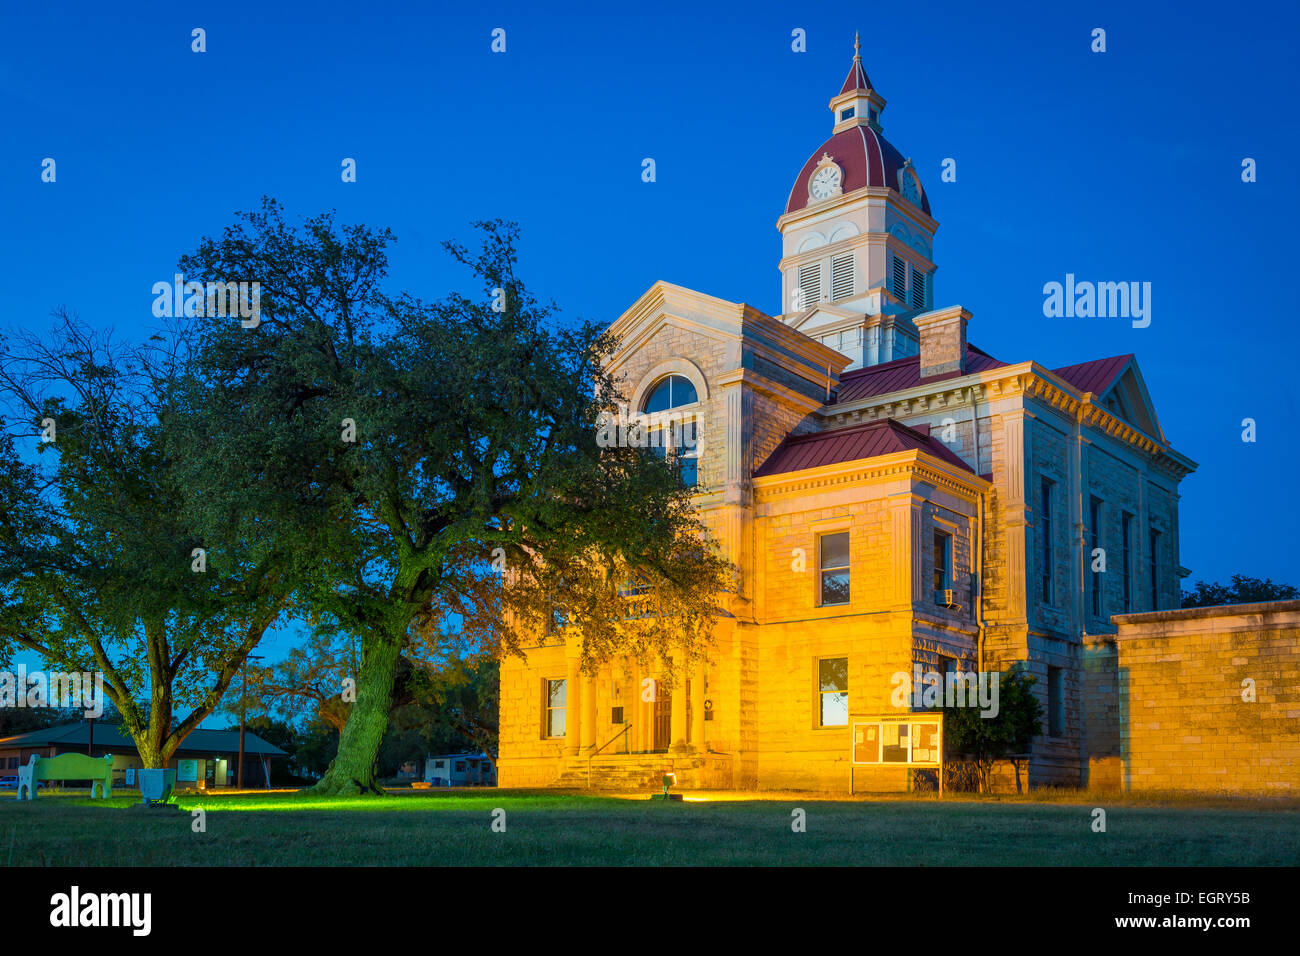 Bandera is the county seat of Bandera County, Texas, United States, in the Texas Hill Country. - Stock Image